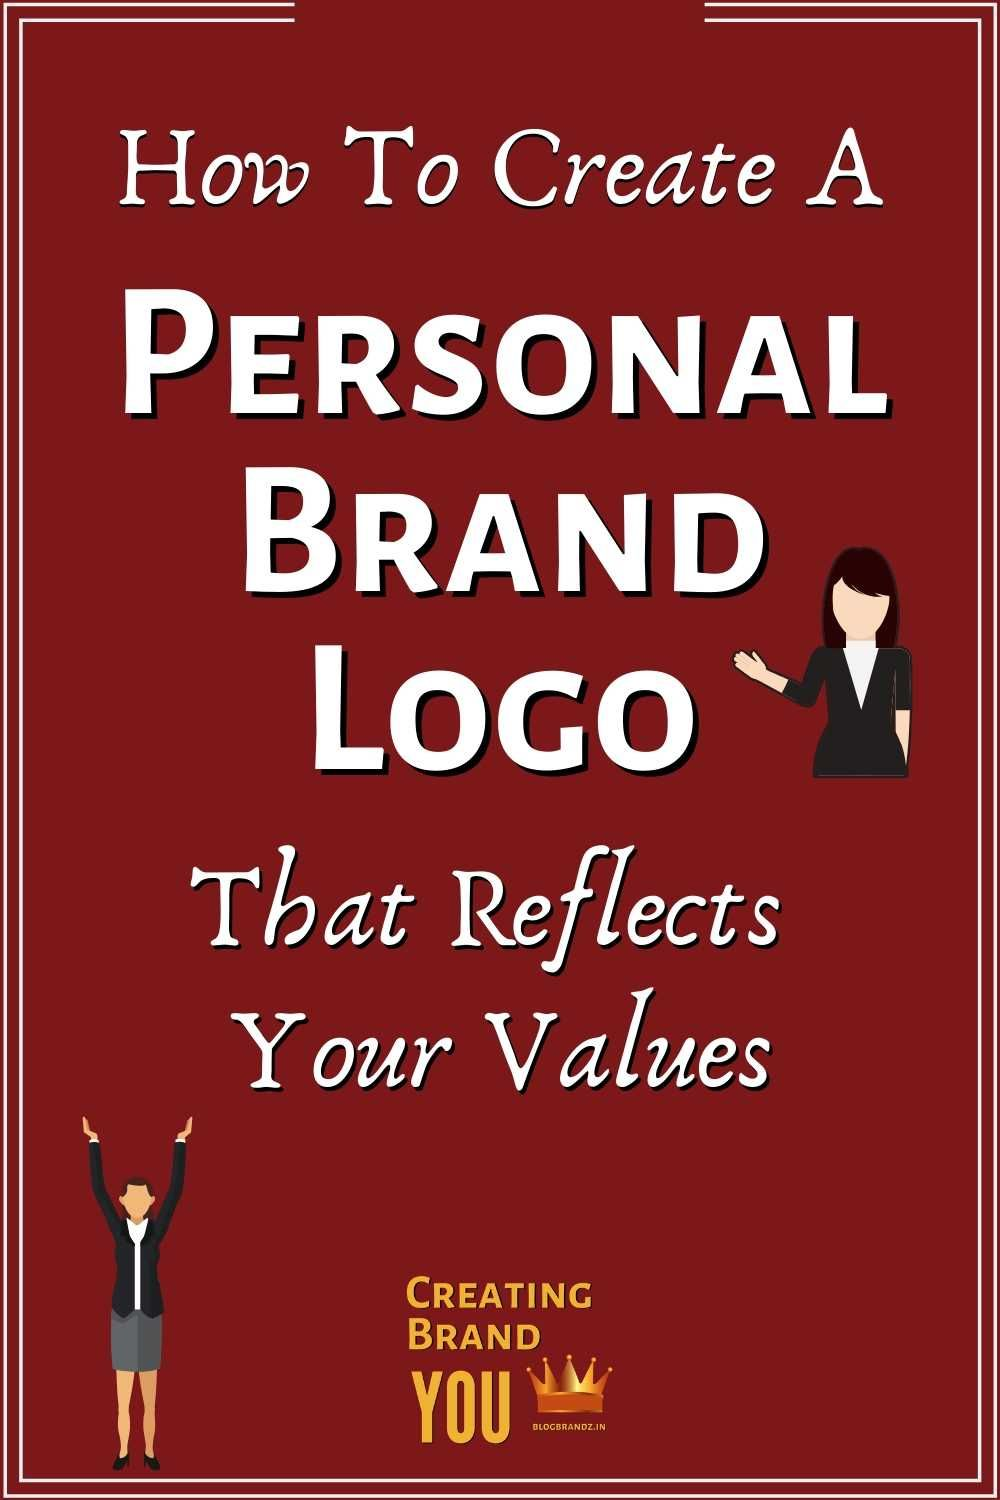 How To Create A Personal Brand Logo That Reflects Your